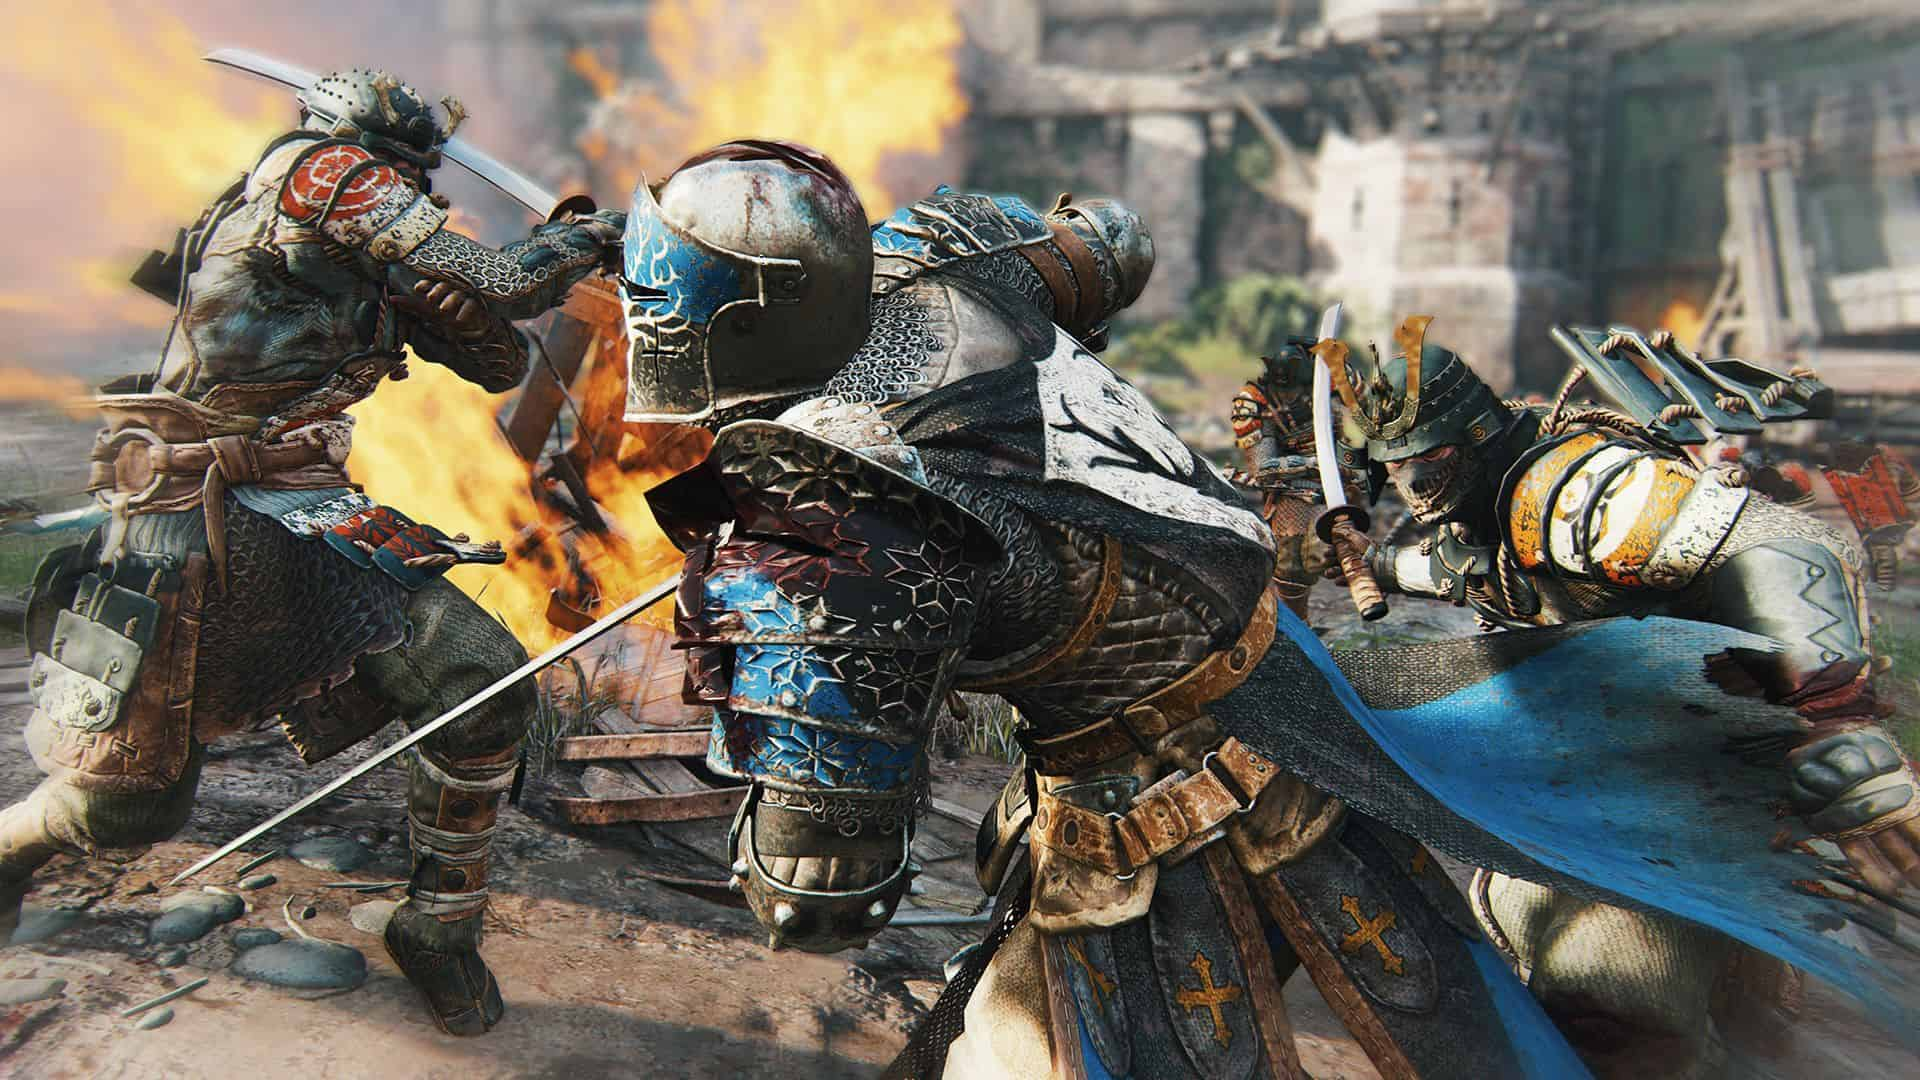 amazon For Honor reviews For Honor on amazon newest For Honor prices of For Honor For Honor deals best deals on For Honor buying a For Honor lastest For Honor what is a For Honor For Honor at amazon where to buy For Honor where can i you get a For Honor online purchase For Honor For Honor sale off For Honor discount cheapest For Honor For Honor for sale For Honor products For Honor tutorial For Honor specification For Honor features For Honor test For Honor series For Honor service manual For Honor instructions For Honor accessories For Honor downloads For Honor publisher For Honor programs For Honor license For Honor applications For Honor installation For Honor best settings apollyon for honor aramusha for honor a synonym for honor antutu for honor play a definition for honor android oreo for honor 8 a man for honor android 8 for honor 6x android 9 for honor 10 android 8 for honor 8 berserker for honor best heroes for honor black prior for honor best for honor player berserker guide for honor best hero in for honor block damage for honor boost xp for honor best price for honor 10 buy for honor crack for honor centurion for honor conqueror for honor competitive for honor code for honor case for honor 9 lite codes for for honor camera for honor 9 lite china for honor case for honor 10 download for honor download for honor pc daubeny for honor deflect for honor debuff resistance for honor deus vult for honor dns for honor display for honor 8 defense penetration for honor deluxe edition for honor content emui 9 for honor play emui 9 for honor 9 lite e3 2018 for honor emblems for honor e3 for honor free emblem editor for honor edition gold for honor edition starter for honor emblem ideas for honor email for honor society free for honor for fashion for honor failed to join group for honor for honor free to play for honor farm for honor flight for honor free weekend for honor fortnite for honor 8x forums for honor game for honor gameplay for honor gladiator for honor games like for honor gear for honor gorilla glass for honor 9 lite guide trophy for honor guide for honor gear rarity for honor guide kensei for honor how to play for honor highlander for honor how to download for honor how much is the for honor season pass how to reputation for honor how to guard in for honor how to shaman for honor how to buy for honor how to centurion for honor how to orochi for honor is for honor free is for honor cross platform is for honor free this weekend is for honor on xbox one is for honor on pc is for honor starter edition free i love for honor is for honor single player is for honor up is for honor in maintenance jvc for honor japanese symbol for honor jogo for honor juego for honor jiang jun for honor jerome for honor jiang jun for honor op jiang jun for honor guide jiang jun for honor nerf jiang jun for honor moveset kensei for honor knight for honor kensei for honor guide knights for honor keyboard or controller for honor kensei rework for honor kensei op for honor keyboard vs controller for honor klingon for honor kensei for honor legendary gear lawbringer for honor legend for honor lawbringer for honor guide leaderboard for honor logo for honor level for honor la shaman for honor lol rewards for honor league of legends rewards for honor lawbringer for honor gear marching fire for honor memes for honor medal for honor pacific assault made for honor movie meaning for honor roll matron for honor matchmaking for honor metacritic for honor medal for honor 2 nobushi for honor nat for honor nuxia for honor nat type strict for honor new for honor update new for honor characters note for honor for honor new heroes new for honor characters season 6 new hero for honor orochi for honor observables for honor orochi for honor guide official site for honor oreo update for honor 8 oreo update for honor 6x overwatch for honor and glory open test for honor oreo for honor 7x oreo for honor 8 peacekeeper for honor play for honor parry for honor ps4 for honor price for honor v10 price for honor 9 lite price for honor view 10 price for honor view 20 price for honor 9n pc for honor download quotes for honor students quel camp choisir for honor quickest way to level up in for honor que faccion elegir for honor que es for honor quel personnage choisir for honor quel faction choisir for honor quick chat not working for honor quilts for honor quit penalty for honor reddit for honor reputation for honor raider for honor review for honor rewards for honor level root for honor 8 roadmap for honor review for honor 7a rewards for honor rewards for honor lol steam for honor samurai for honor shaman for honor steam charts for honor starter edition for honor season pass for honor synonym for honor system requirements for honor steven universe made for honor season 6 for honor the game for honor twitch for honor trailer for honor tier list for honor season 6 tracker for honor for honor vortigern the shaman for honor trophy guide for honor the centurion for honor the orochi for honor uplay for honor ubisoft for honor free ubisoft for honor forum update for honor 4x update for honor 9 lite update for honor 10 unlock bootloader for honor 6x update for honor update for honor play update for honor 8x vortigern for honor valkyrie for honor viking for honor viking classes for honor vanguard for honor valkyrie rework for honor vortigern release date for honor valor for honor www.for honor game.com what is for honor starter edition wiki for honor what is for honor season pass who to play in for honor wikipedia for honor when is for honor season 6 when is for honor free weekend where to buy for honor xbox store for honor xbox for honor player count xbox one for honor won't launch xbox one for honor player count xbox one for honor cheats xbox one for honor gameplay xp for honor xbox one for honor season pass xbox one for honor gold edition xbox one for honor gamestop year 3 for honor characters year 2 for honor year 3 heroes for honor you failed to join the group try again later for honor youtube for honor you failed to join the group for honor yellow clock for honor youtube for honor gameplay year 3 roadmap for honor year 3 pass for honor zylbrad for honor zagrajmy w for honor zenturio for honor zero punctuation for honor zamknięty nat for honor zu beobachtendes for honor zangado for honor for honor zone attack zmiana frakcji for honor zmart for honor đánh giá for honor 1.14 for honor 1.1 for honor observables 1.18 for honor reviews for honor 10 huawei for honor 10 android pie for honor 10 2018 e3 for honor 2018 for honor 2018 for honor tier list 20006 error for honor 2019 for honor 2017 for honor 2 player for honor for honor halloween event 2018 for honor review 2018 for honor gameplay 2018 360 cover for honor 9 lite 34 for honor 3v3 for honor 3 year pass for honor 3dm for honor 3dm for honor crack medal of honor for xbox 360 medal of honor airborne for xbox 360 reddit 34 for honor level 3 bots for honor 4 temporada for honor 4th faction for honor 4k for honor wallpaper rom for honor 4c marshmallow update for honor 4x firmware for honor 4x battery for honor 4c specs for honor 4c root for honor 4x 50/50 for honor 5v5 for honor android 7 for honor 5x root for honor 5c oreo rom for honor 5x how to unlock bootloader for honor 5x specs for honor 5c oreo for honor 5x for huawei honor 5c lineage os for honor 5x rom for honor 6x stock rom for honor 6x xda for honor 6x firmware for honor 6x price for honor 6x themes for honor 6x for honor 6x latest update for honor 6x root for honor 6x review for huawei honor 7x android 8 for honor 7x honor 7x for buy for honor 7c for honor 7x camera for honor 7x honor 7x price for india for honor 7a update for honor 7x 8.1 update for honor 9 lite specs for honor 8x price for honor 8x specification for honor 8x review for honor 8x season 8 for honor android 8 for honor 7 android 8 for honor 5c review for honor 9i emui 9 for honor 7x android 9 for honor 7x android 9 for honor play android 9 for honor 8x emui 9 for honor 9 for a maid of honor for an honor meaning what is the game for honor about for love and honor who to play as in for honor what are the requirements for national honor society what are honor classes for ubisoft about for honor what are mark of honor for for blood and honor for honor best class for honor berserker guide for honor berserker for honor black prior for honor player base for honor block damage maid of honor speech for best friend for honor best character benefits for medal of honor for congressional medal of honor for.com honor reddit for honor game.com for honor centurion for honor characters for honor classes for honor steam charts for honor cross platform for honor china for de honor for duty and honor for duty honor country for honor green ford honors those who serve for honor download for honor pc download for honor deflect for honor deluxe edition for honor dedicated servers fore honor fore honor golf fore honor golf game fore honor golf course for honor game fore honor roofing for honor 21 for honor inception for honor starter edition for honor starter edition vs standard for of honor pc for of honor ps4 season pass for for honor emblems for for honor update for for honor are the servers down for for honor synonym for for honor key for for honor for guest of honor for great honor for glory for honor for honor gameplay for honor gold edition for honor gear for honor guide for honor orochi guide for honor warden gear for huawei honor 9 for huawei honor 7 for honor honor trailer for huawei honor 6 for huawei honor for honor honor code for huawei honor 4c for her honors thesis kim wants to investigate when is the for honor update classes in for honor what is a maid of honor for what is mark of honor for what is for honor marching fire for honor jvc application for national junior honor society honor society for criminal justice juego de for honor for honor failed to join group for honor jiang jun for honor jelentése for honor i don't speak japanese for honor failed to join group try again later for honor failed to join session for honor knight for honor kensei for honor kensei guide for honor knights for honor controller or keyboard for honor key for honor king for honor kensei rework for honor marching fire e3 fan kit for honor cd key for love and honor cast for love and honor trailer for love and honor imdb for love and honor full movie for love and honor movie for honor tier list for honor lawbringer for honor legendary gear for my daughters honor for maid of honor for my honor system requirements for medal of honor speech for maid of honor speech for matron of honor cast for made of honor for honor patch notes for honor nobushi guide for honor centurion nerf national honor society for art honor society for nursing national honor society for high school scholars national honor society for spanish nfc for honor 7x national honor society for high school review of for honor gameplay of for honor update on for honor what is the starter edition of for honor matron of honor for classes of for honor congressional medal of honor for for honor pc for honor ps4 for honor player count maid of honor quotes for best friend quotes for maid of honor speech qualifications for national honor society quotes for maid of honor amazon quiz for honor 7x amazon quiz for honor view 10 quotes for word of honor amazon quiz for honor 8x court of honor for a quinceanera for honor free for honor crack for honor cấu hình for honor wiki for honor steam for honor orochi for honor đánh giá for someone honor for strength and honor for such a honor for honor season 4 for honor servers for honor stats for honor season 5 for the honor game for the honor gameplay for the honor xbox one for the honor pc for the honor free for the honor download for the honor of love for the honor trailer for the brave honor for honor update support.ubisoft for honor for honor usa for honor vietnam for honor viking for honor valkyrie for honor voice actors for honor centurion voice lines for honor deus vult for honor valkyrie rework for honor vortigern release date for word of honor for honor who to play for honor wikipedia when is for honor free what is the definition for honor for honor servers when for honor double xp for honor player count xbox for honor codes xbox for honor xbox one gameplay cheats for medal of honor airborne xbox 360 medal of honor warfighter for xbox one medal of honor for xbox for honor xp fest for honor xp boost for honor xbox one for your honor for your honor meaning for you deserve the glory and the honor for honor youtube for honor year 3 for honor year of the harbinger it would be an honor for me to work with you can you play for honor offline for honor year 3 pass can you run it for honor for honor za darmo for honor zenturio for honor zu beobachtendes for honor zdarma for honor guard mode dead zone for honor zangado for honor jak zdobyć reputacje for honor zenturio guide for honor nat zamknięty harrison ford honorary oscar spring-ford honor roll regina ford honorhealth henry ford honors program sar value for honor 10 for honor 10 gpu turbo for honor 10 for honor 2018 for honor e3 2018 for honor error code 20006 for honor 2017 for honor 2019 for honor tier list 2018 medal of honor warfighter for xbox 360 for honor 3dm for honor 3dm crack for honor 3v3 for honor xbox 360 update for honor 3c for honor year 3 heroes custom rom for honor 4c update for huawei honor 4c update for honor 4c specs for huawei honor 4c rom for honor 5x otg for honor 5x emui 5.1 for honor 6x emui 5.1 for honor 8 twrp for honor 5x otg for honor 5c oreo for honor 6x root for honor 6a hard reset for honor 6x camera for honor 8x for honor 8x for honor tier list season 8 release date for honor 9 lite price for honor 9 for honor assassin's creed for honor all characters for honor aramusha for honor apollyon for honor arcade mode for honor amazon for honor aramusha guide for honor all classes for honor armor for honor and glory for honor badge for honor best faction for honor breach for honor berserker gear for honor conqueror for honor cốt truyện for honor crack fshare for honor codes for honor dead game for honor download crack for honor dlc for honor discord for honor down for honor emblems for honor executions for honor expansion for honor event for honor execution times for honor emblem tutorial for honor editions for honor emblem ideas for honor esports for honor emblem editor for honor full crack for honor fashion for honor free steam for honor faction war for honor faction for honor free weekend for honor forums for honor factions for honor gamek for honor gladiator for honor gear guide for honor gladiator guide for honor g2a for honor heroes for honor highlander for honor highlander guide for honor hero tier list for honor highlander quotes for honor hack for honor hacks for honor halloween event for honor highlander gear for honor ign for honor imdb for honor is trash for honor intro song for honor is broken for honor iron legion for honor is dead for honor item rarity for honor images for honor is bad for honor jiang jun op for honor jiang jun kick for honor japanese for honor jiang jun guide for honor japanese classes for honor jiang jun moveset for honor japanese characters for honor jiang jun nerf for honor jiang jun feats for honor keyboard or controller for honor kensei gear for honor knight classes for honor keyboard vs controller for honor lawbringer guide for honor leaderboard for honor live update error for honor lawbringer gear for honor latest patch for honor local multiplayer for honor latency for honor low fps for honor marching fire for honor miễn phí for honor maintenance for honor metacritic for honor memes for honor multiplayer for honor matchmaking for honor meta for honor marching fire season pass for honor marching fire trailer for honor news for honor nat strict pc for honor new characters for honor new faction for honor nobushi for honor new executions for honor nat for honor nuxia for honor offline for honor observables for honor open test for honor online for honor orochi gear for honor orochi rework for honor offline mode for honor orders for honor public test for honor patch for honor pc crack for honor pc cấu hình for honor ps4 review for honor parry for honor quotes for honor quiz for honor quick steel for honor quests for honor queue times for honor quit penalty for honor qi stance for honor quick chat for honor qi trap for honor quick chat gone for honor reddit for honor review for honor requirements for honor requirements not met for honor reputation for honor ranks for honor roadmap for honor raider for honor redeem codes for honor refined gear for honor samurai for honor system requirement for honor server status for honor shaolin for honor single player for honor standard edition for honor steamdb for honor trailer for honor trainer for honor tiandi for honor twitch for honor tracker for honor truc tiep game for honor tv tropes for honor twitter for honor trophy guide for honor updating 0 for honor uplay for honor updates for honor update today for honor unlock tech for honor update notes for honor unbalanced for honor untrusted system file for honor ubisoft free for honor voz for honor voice lines for honor vikings for honor valkyrie guide for honor warden for honor walkthrough for honor wikia for honor wallpaper for honor warden guide for honor warlord for honor wulin for honor xp farm for honor xbox one x for honor xbox 1 for honor xp for honor xbox servers for honor xbox player count for honor xp glitch for honor year 3 roadmap for honor year 2 heroes for honor year 2 season pass for honor year 2 roadmap for honor your skill for honor year 3 season pass for honor zone attack button for honor zerker for honor zerk for honor zone parry for honor zelda emblem for honor zone attack one button for honor zone attack ps4 for honor zero punctuation for honor zone attack trial for honor 1 for honor 1 v 4 for honor 1 vs 9 for honor 1. bölüm for honor 1 vs 4 for honor 1 vs 2 for honor 1 6 for honor 2 for honor 2 player for honor 2 release date for honor 2 player split screen for honor 2 player local for honor 2 player offline for honor 2 joueurs local for honor 2 jugadores for honor 2 giocatori for honor 2 ps4 for honor 1v1 for honor 1v1 tier list for honor 1.2 observables for honor 15 minute penalty for honor 1v1v1 for honor 1.5 observables for honor 1.4 observables for honor 1.6 observables for honor 1.6 for honor 1v1 revenge for honor 2018 review for honor 2018 tier list for honor 20006 for honor 3 year pass for honor 34 for honor 3 perks for honor 3d models for honor 3 for honor 3.1 observables for honor 3.6 observables for honor 3.2 observables for honor 3.5 observables for honor 4 new heroes for honor 4 perks for honor 4k wallpaper for honor 4k for honor 4 new heroes 2019 for honor 4v4 for honor 4th faction for honor 4v4 tier list for honor 4 player co op for honor 4 for honor 5v5 for honor 50/50 for honor 5th faction for honor 5 player for honor 5 kill streak for honor 5000 steel for honor 50000 steel for honor 500 ms attacks for honor 50 50 for honor 50/50 meaning for honor 600 renown for honor 600 renown order for honor 60fps for honor 60fps ps4 pro for honor 60fps xbox one x for honor 60 fps console for honor 6v6 for honor 60 fps ps4 for honor 60 fps cap for honor 60 fps pc for honor 7-00004 for honor 7-00005 for honor 75 off for honor 7 day champion status for honor 7 for honor 7 season for honor 70 off for honor 75 for honor 8000 steel for honor 8v8 for honor 8 lite for honor 8 for honor season 8 for honor season 8 tier list wallpaper for honor 8x update for honor 8 for honor 940mx for honor 9gag emblem for honor 9 lite for honor 9 for honor season 9 for honor season 9 release date wallpaper for honor 9 lite case for honor 9